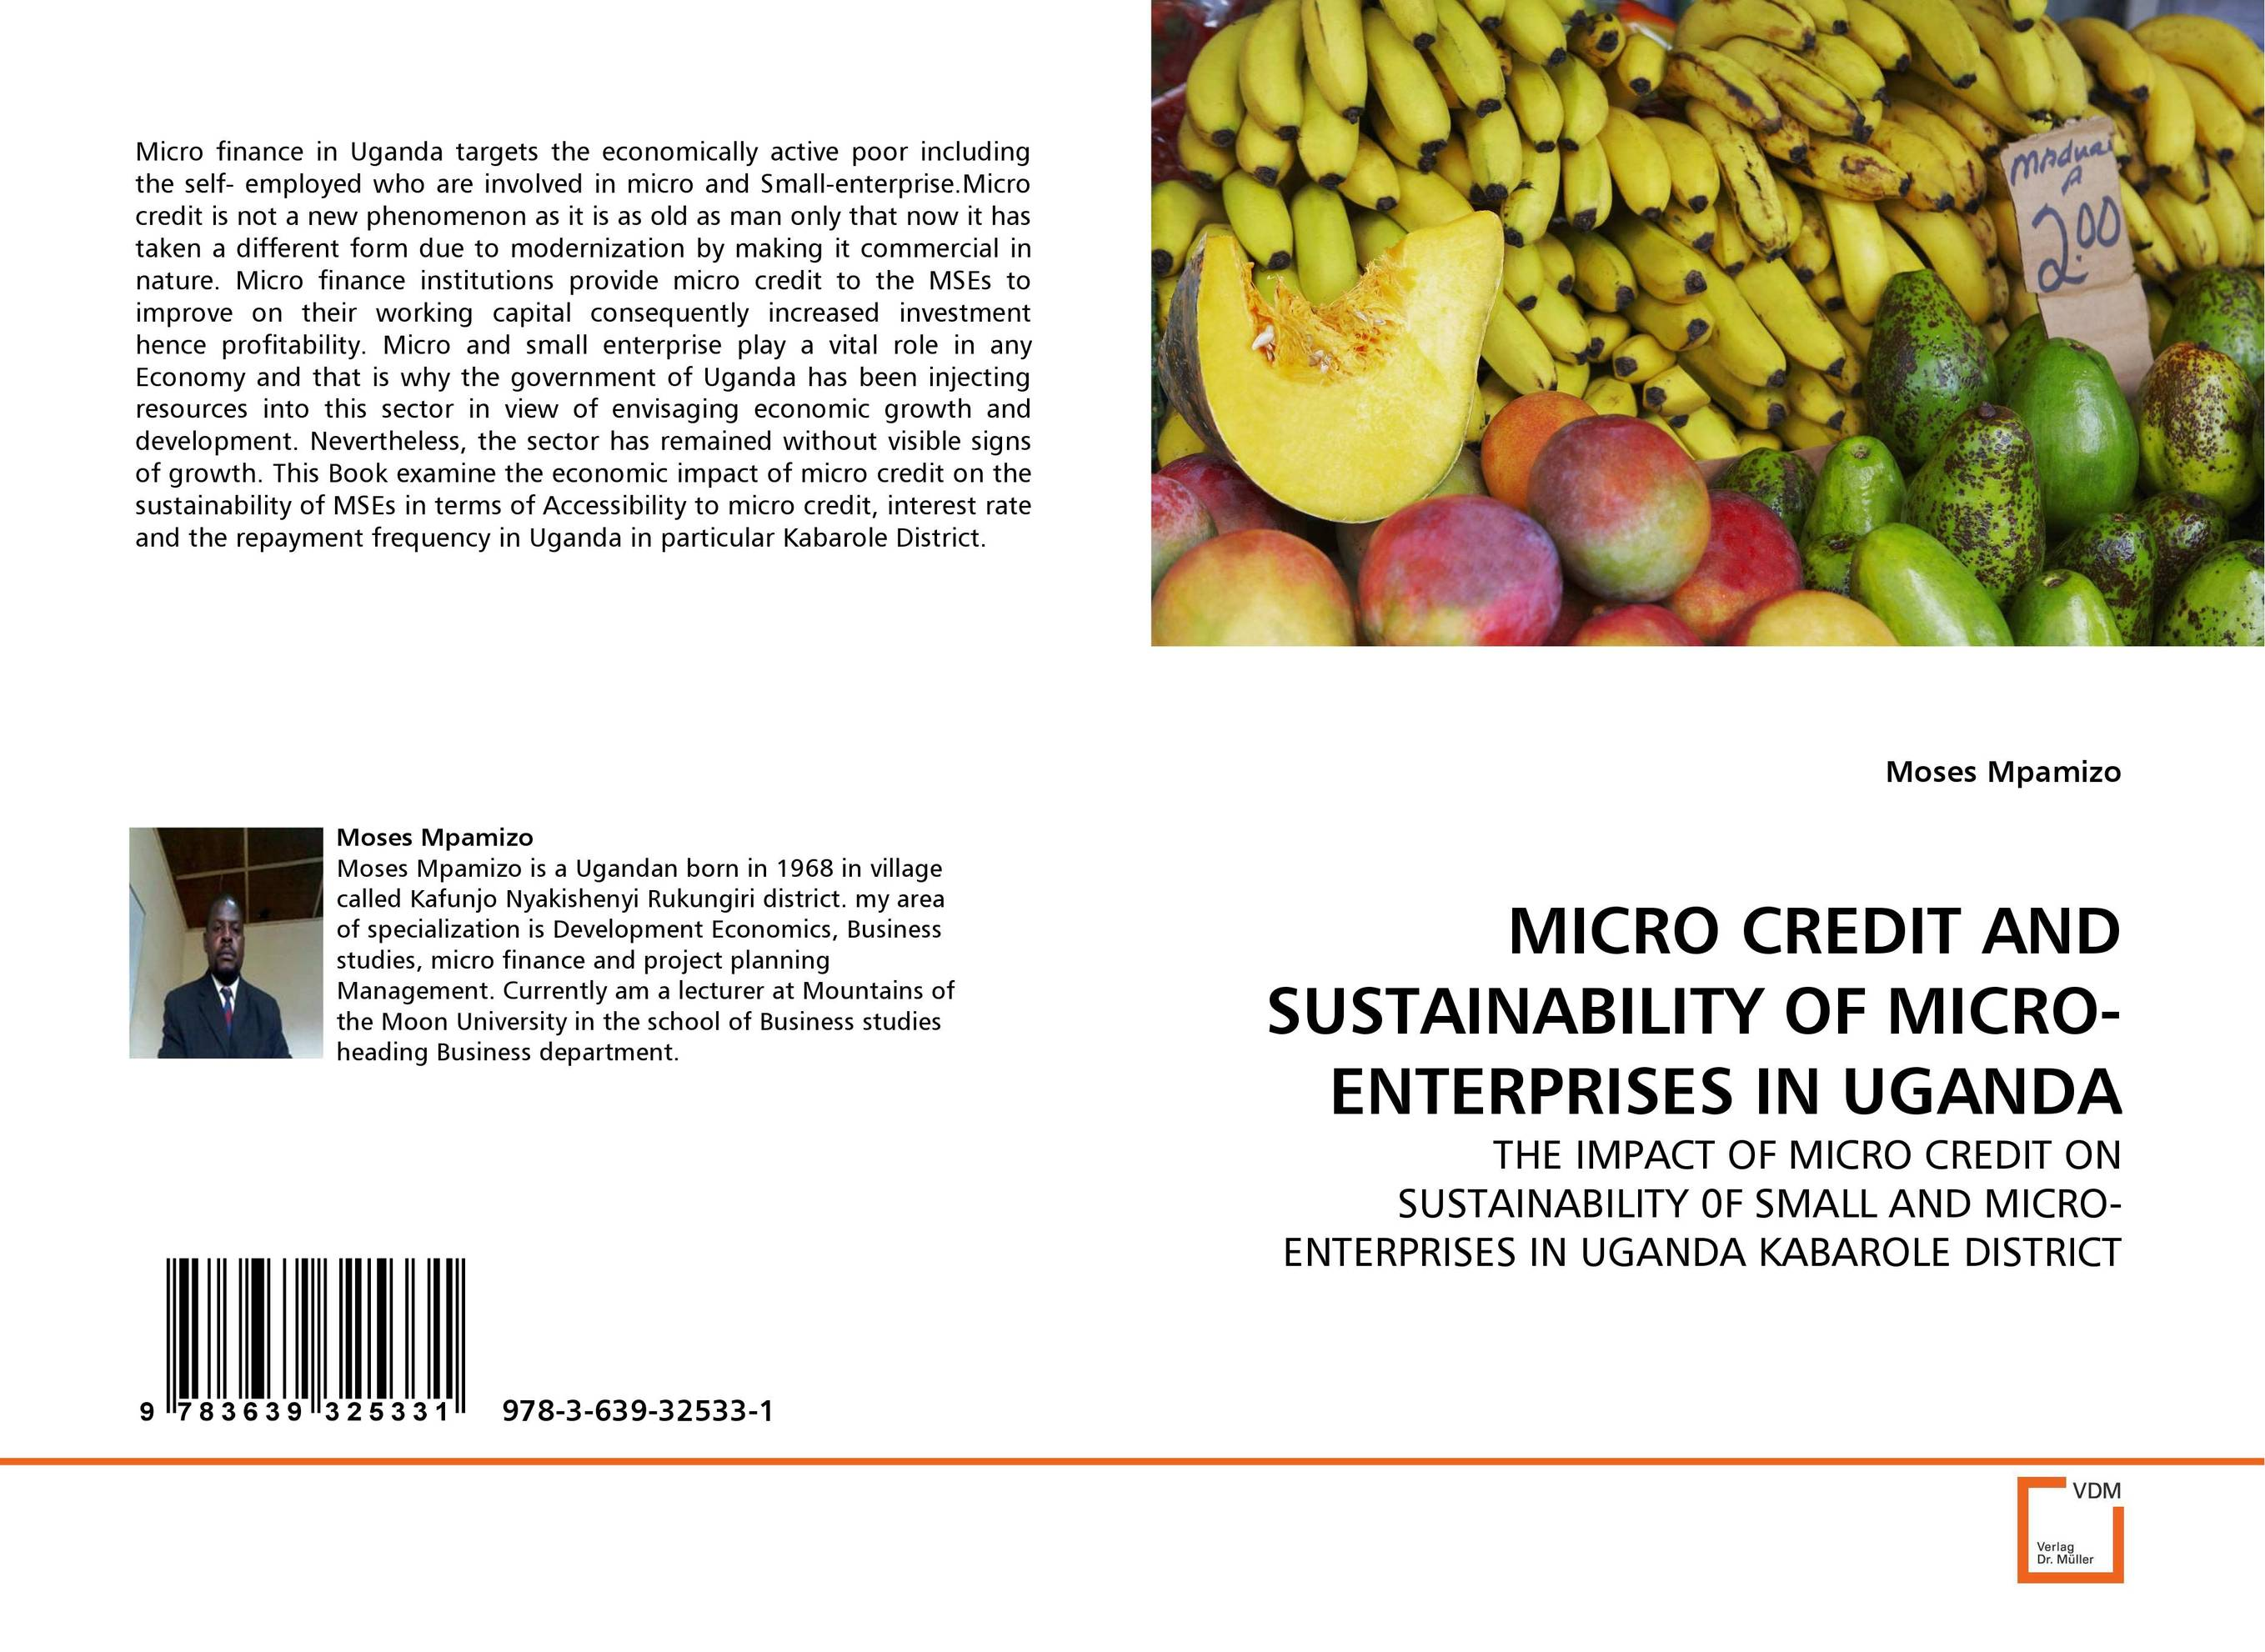 MICRO CREDIT AND SUSTAINABILITY OF MICRO-ENTERPRISES IN UGANDA jaynal ud din ahmed and mohd abdul rashid institutional finance for micro and small entreprises in india